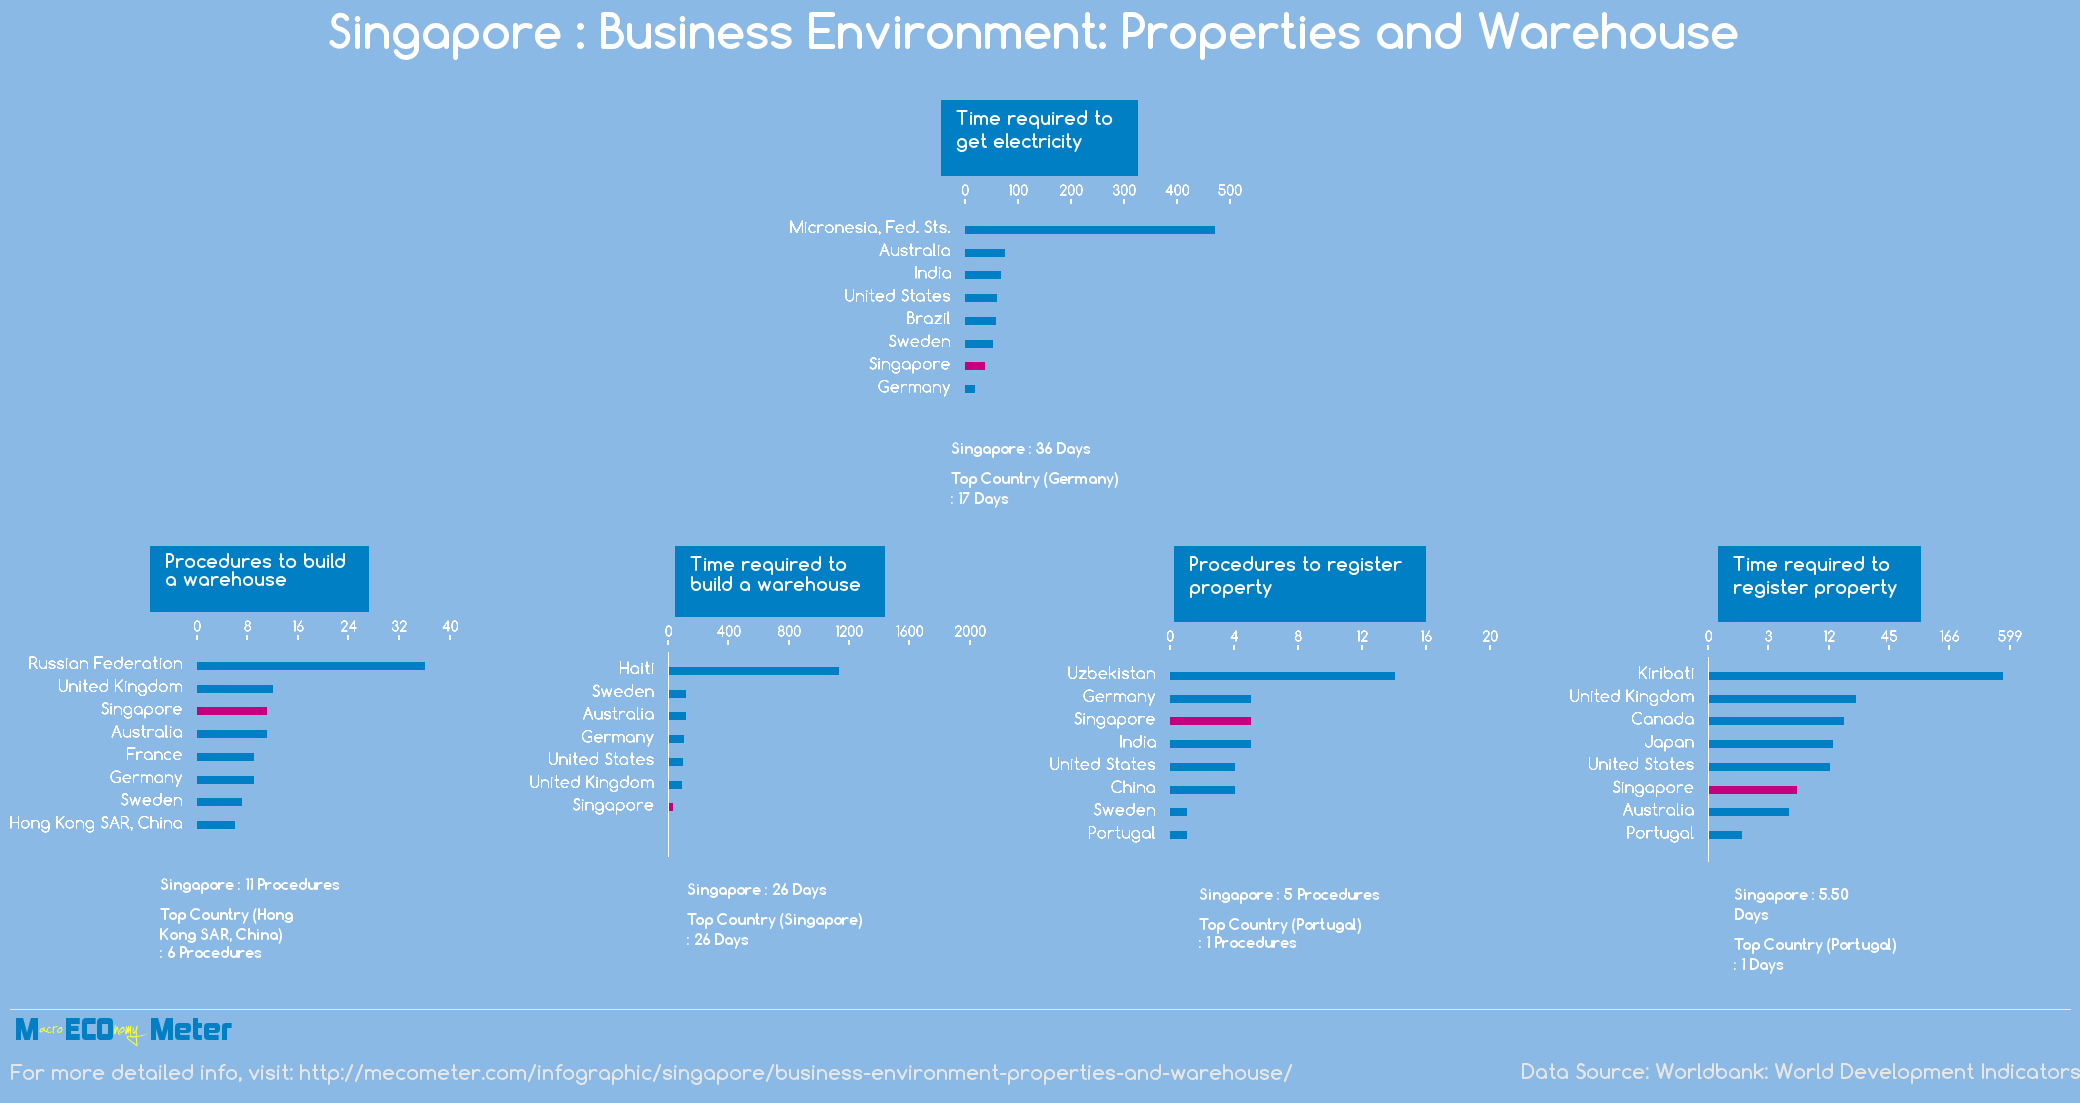 Singapore : Business Environment: Properties and Warehouse